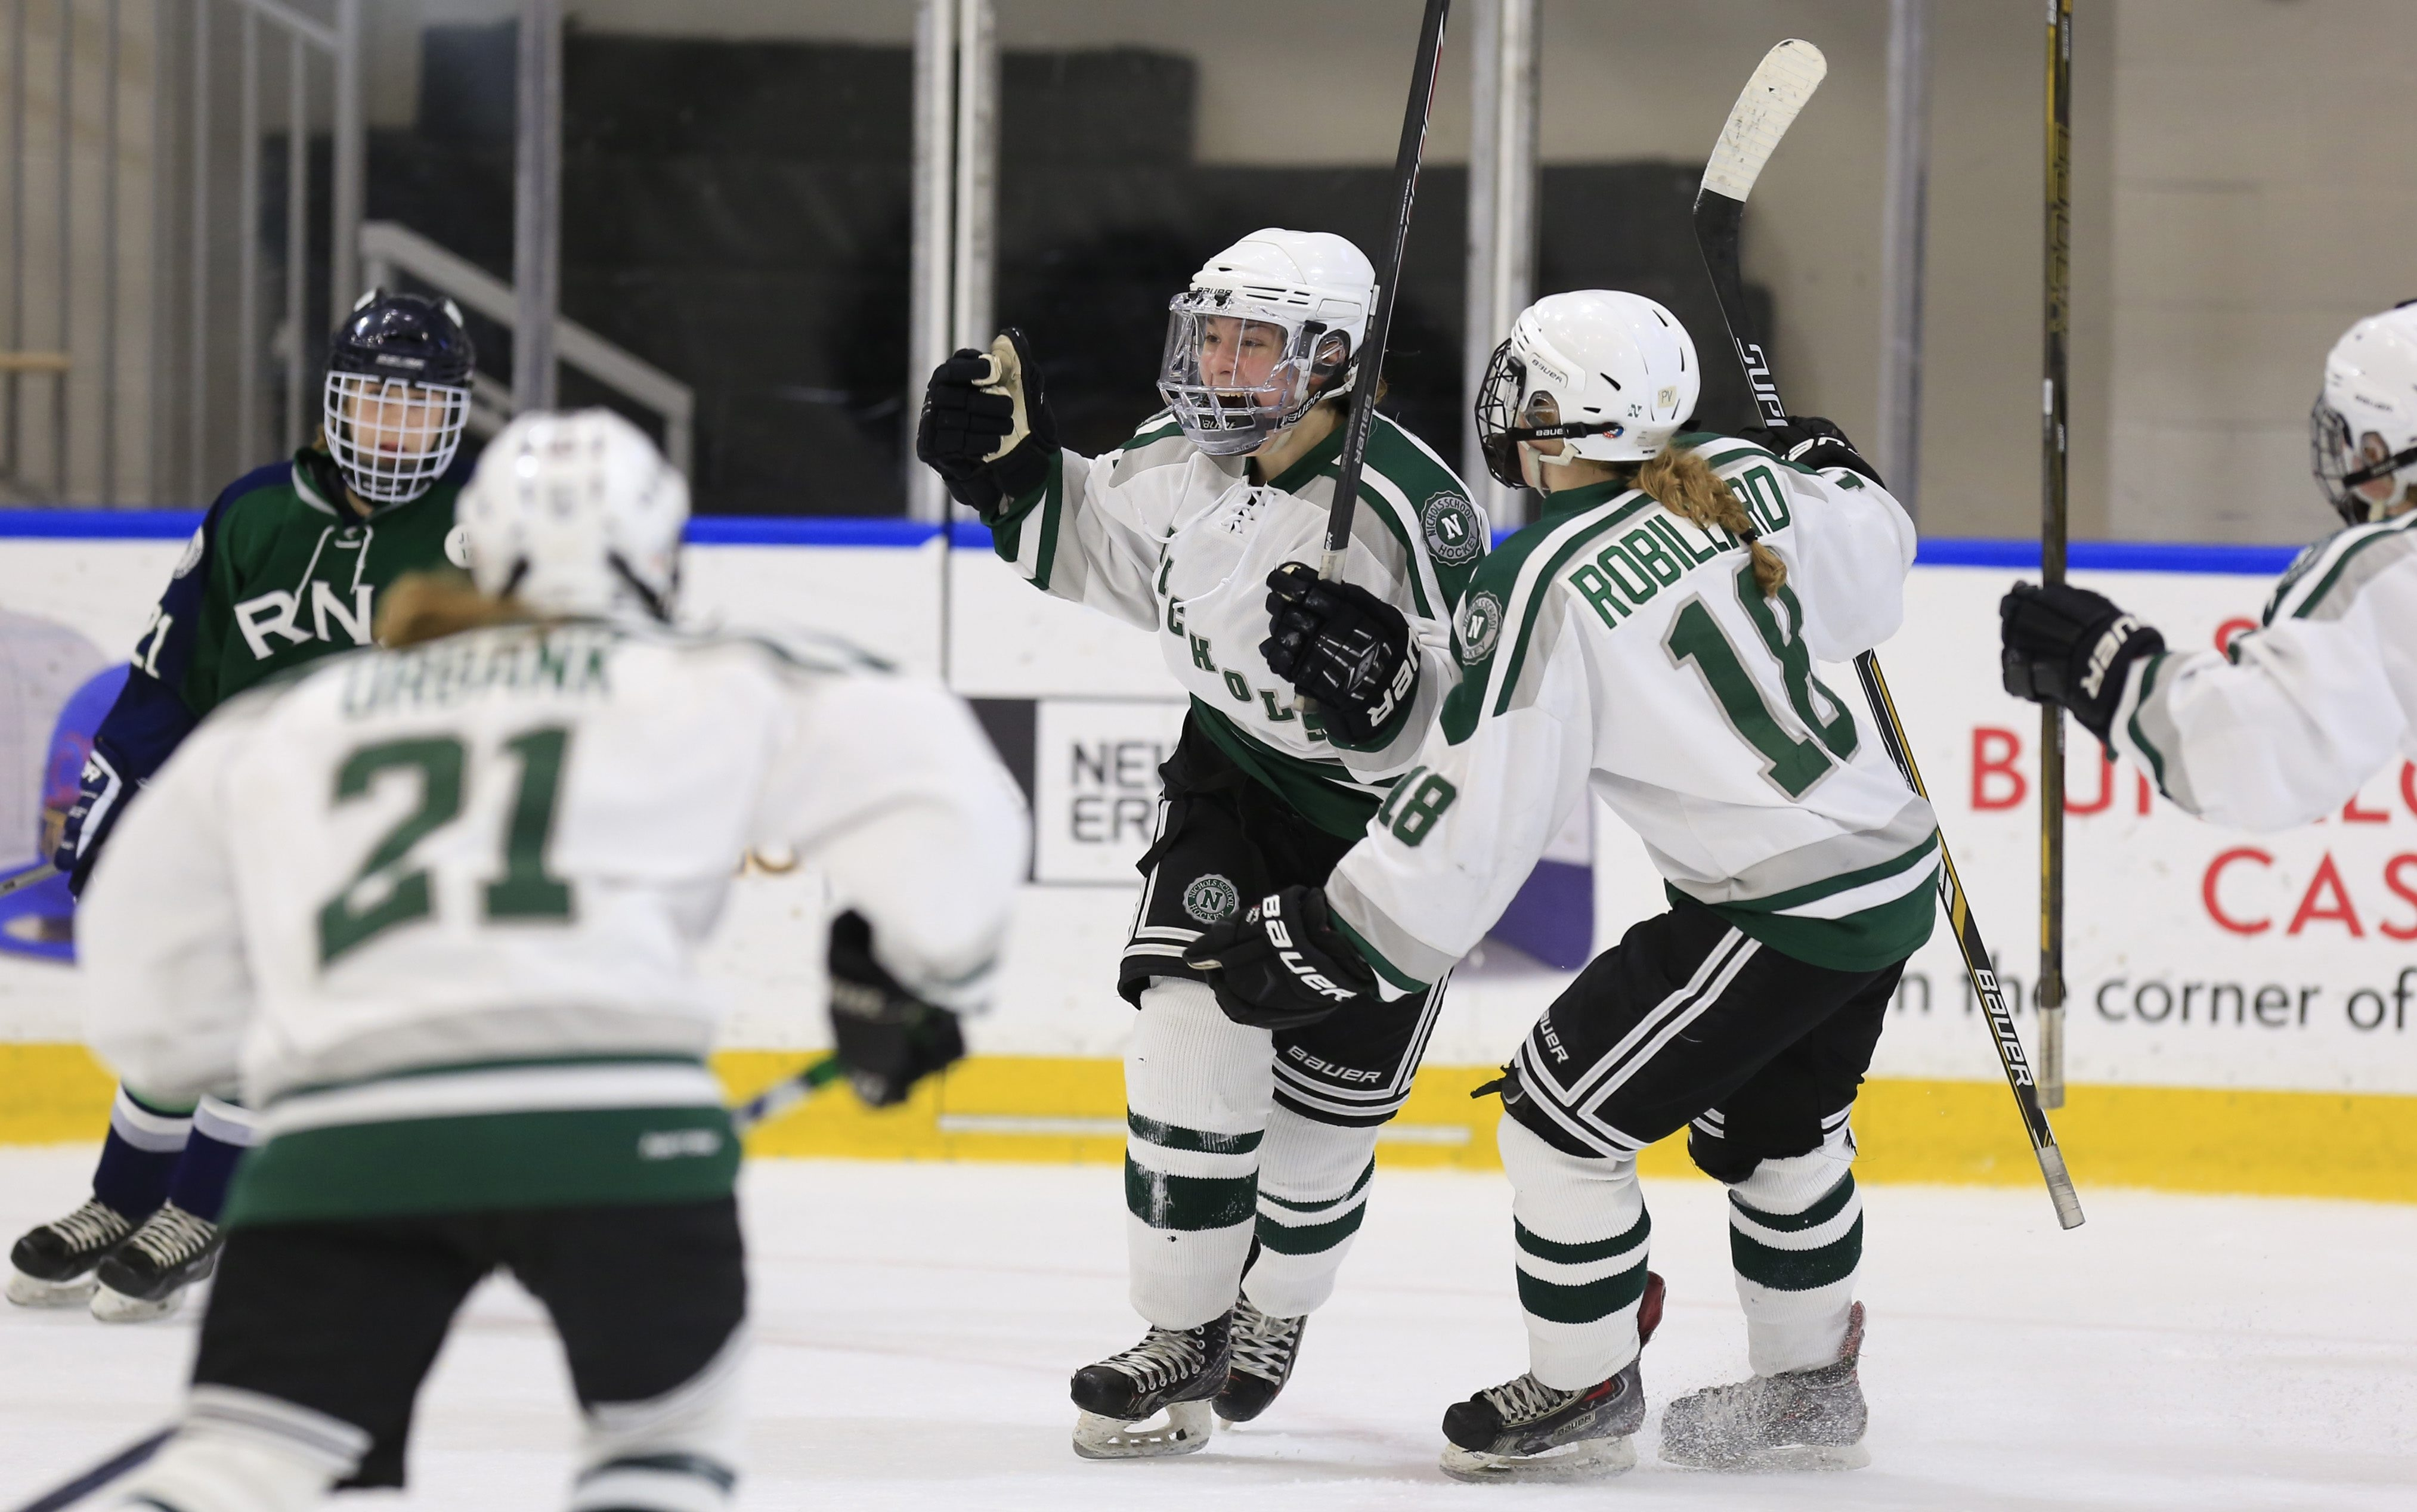 Katelyn Knoll of Nichols celebrates a second period goal against Rothesay Netherwood in a consolation game in the NAPHA Championships at HarborCenter on Saturday.